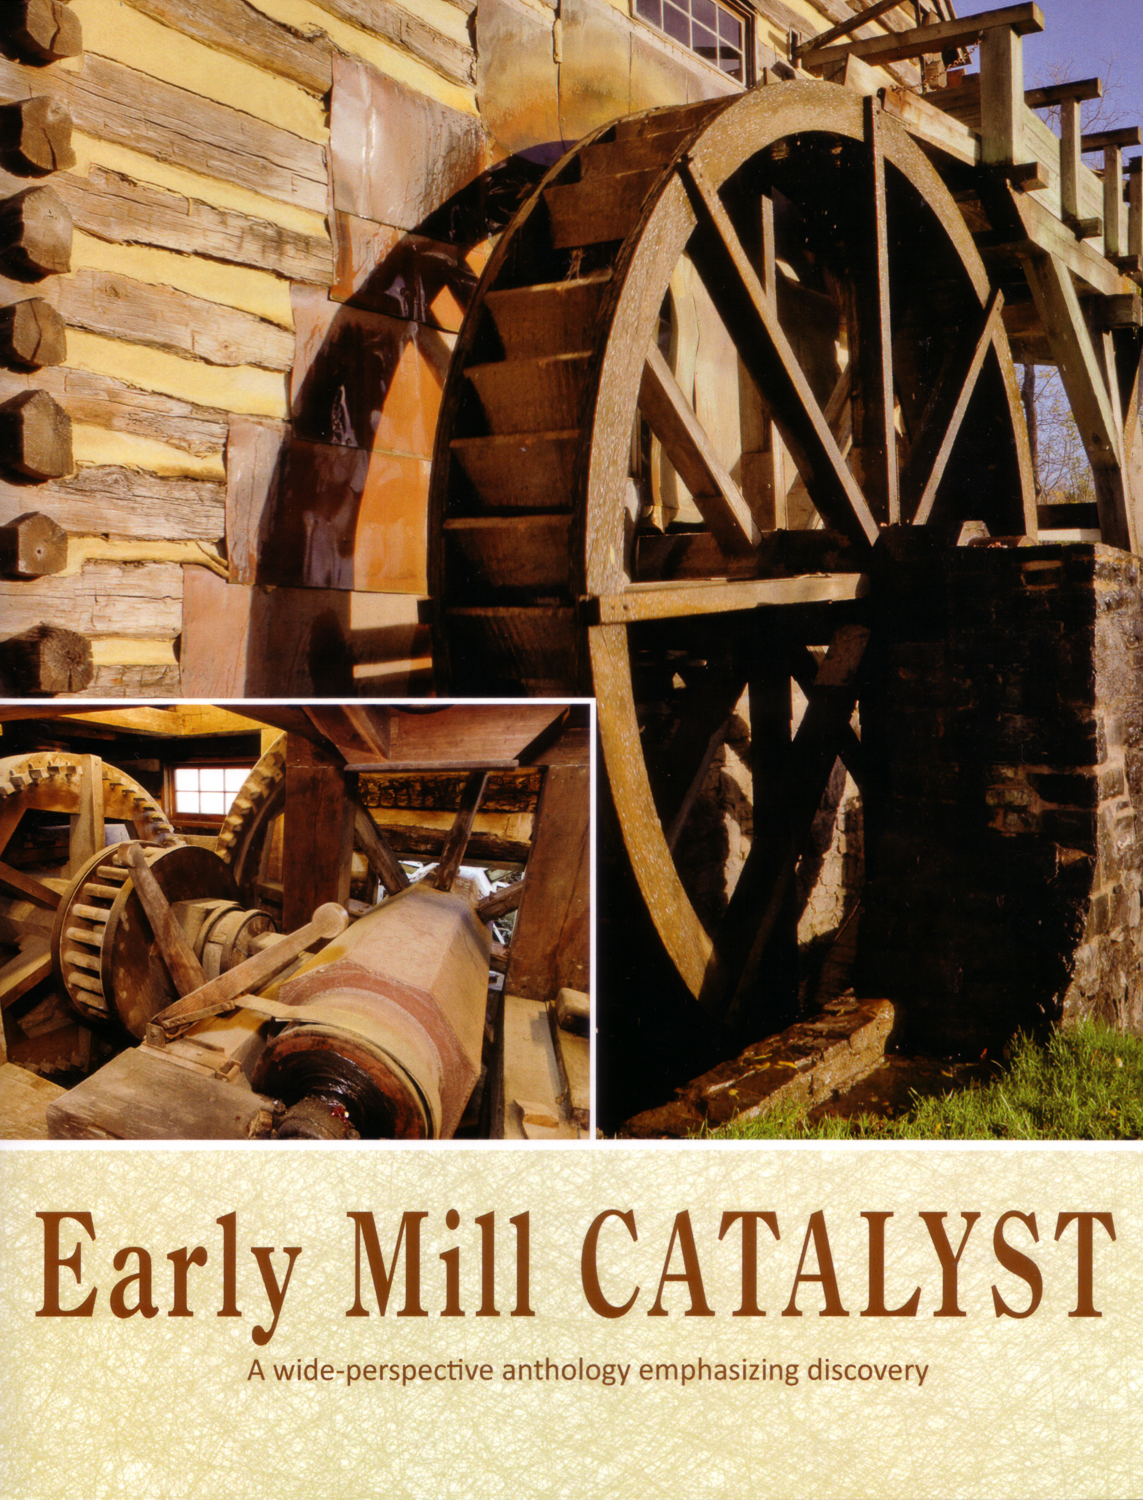 Early Mill CATALYST